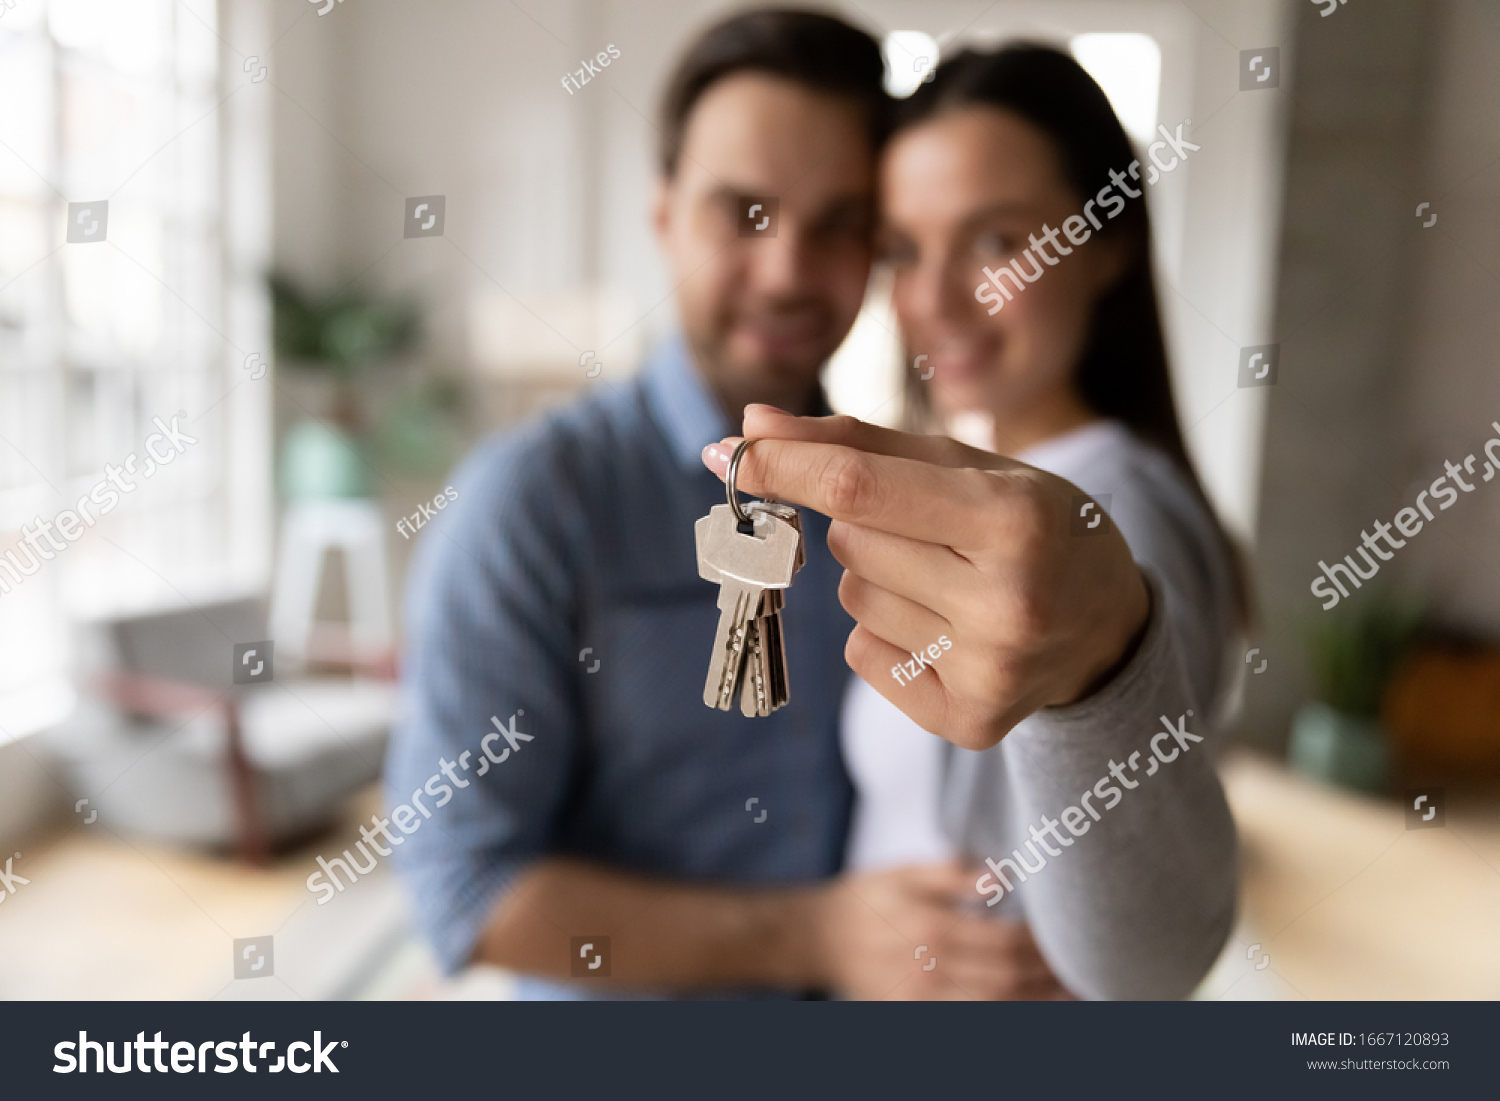 Focus on keys, held by excited young spouses homeowners. Happy married family couple celebrating moving in new house home , demonstrating keys, standing in apartment, real estate mortgage concept. #1667120893